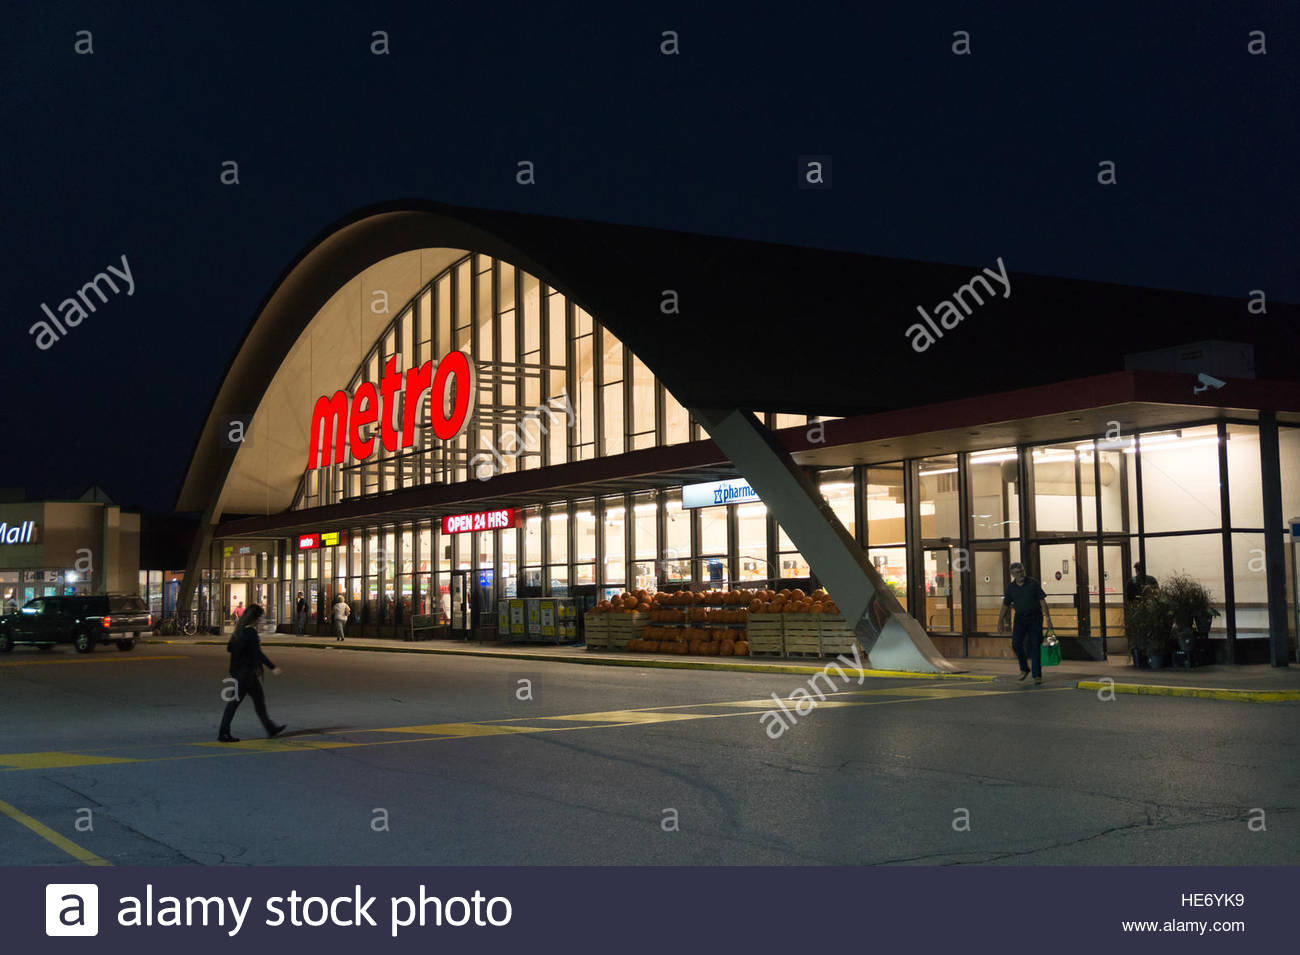 facade of metro store a 24 hours open supermarket in. Black Bedroom Furniture Sets. Home Design Ideas